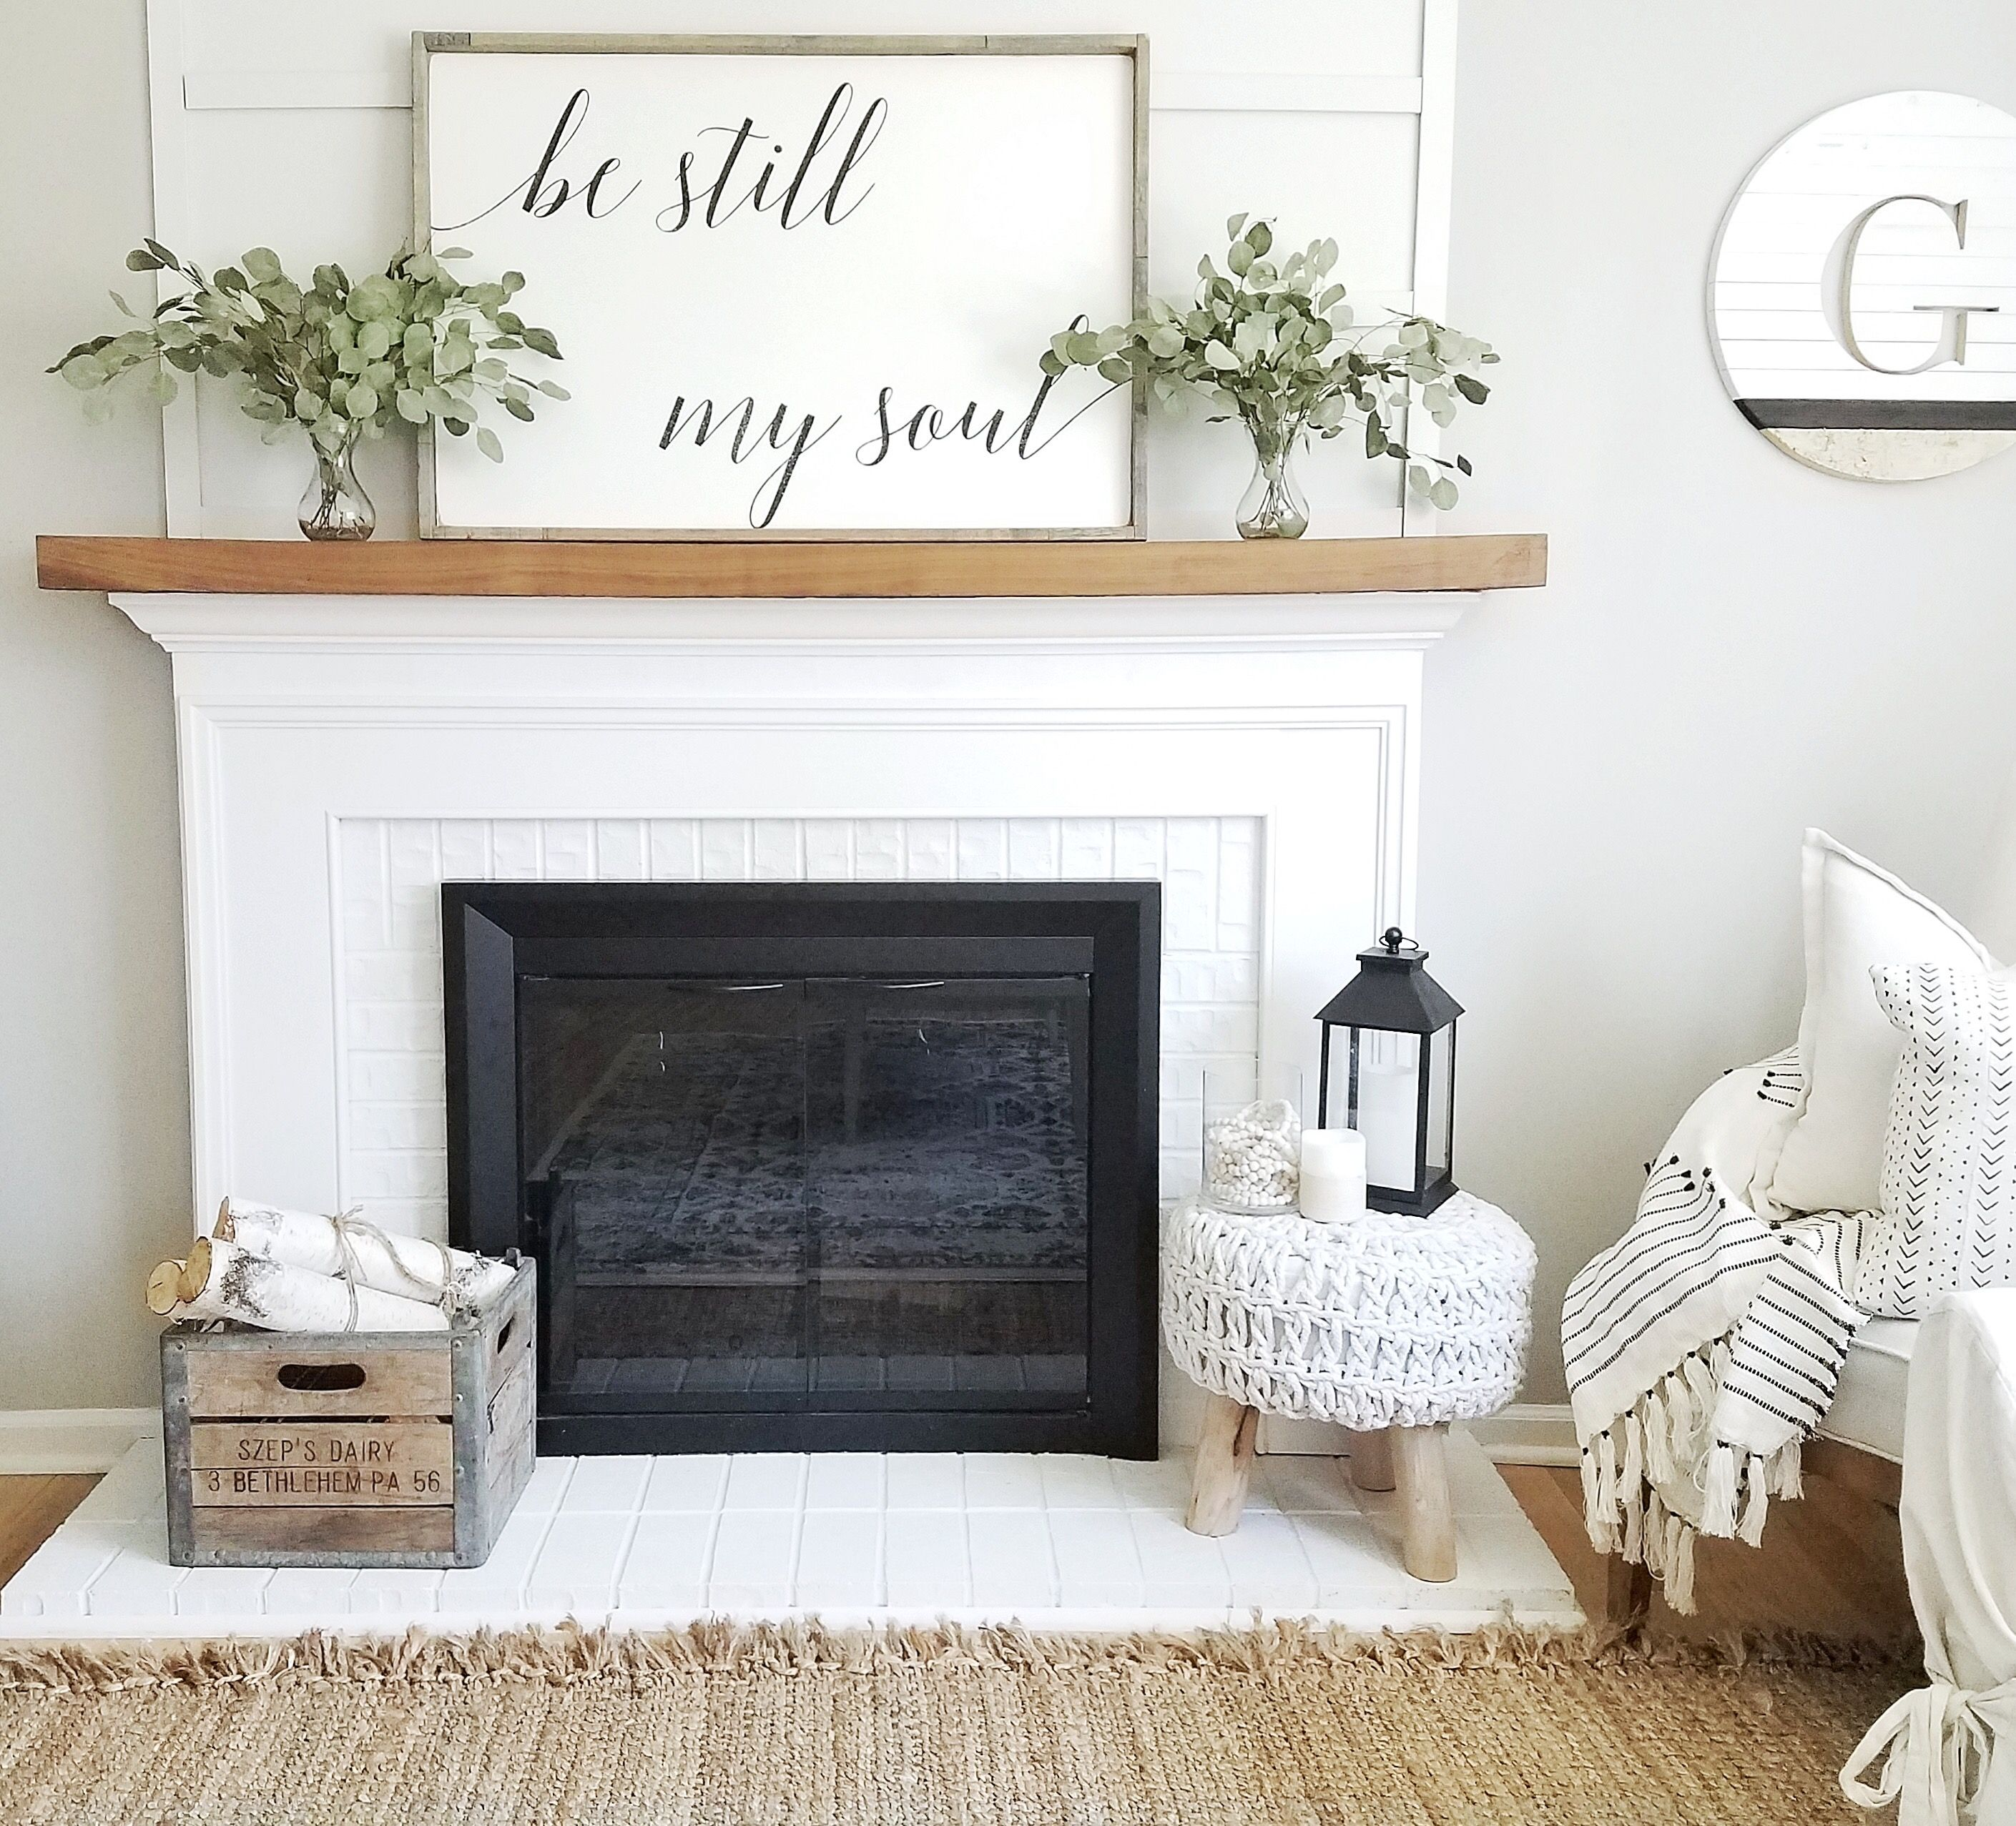 50 inspiring living room ideas fixer upper joanna for Over fireplace decor